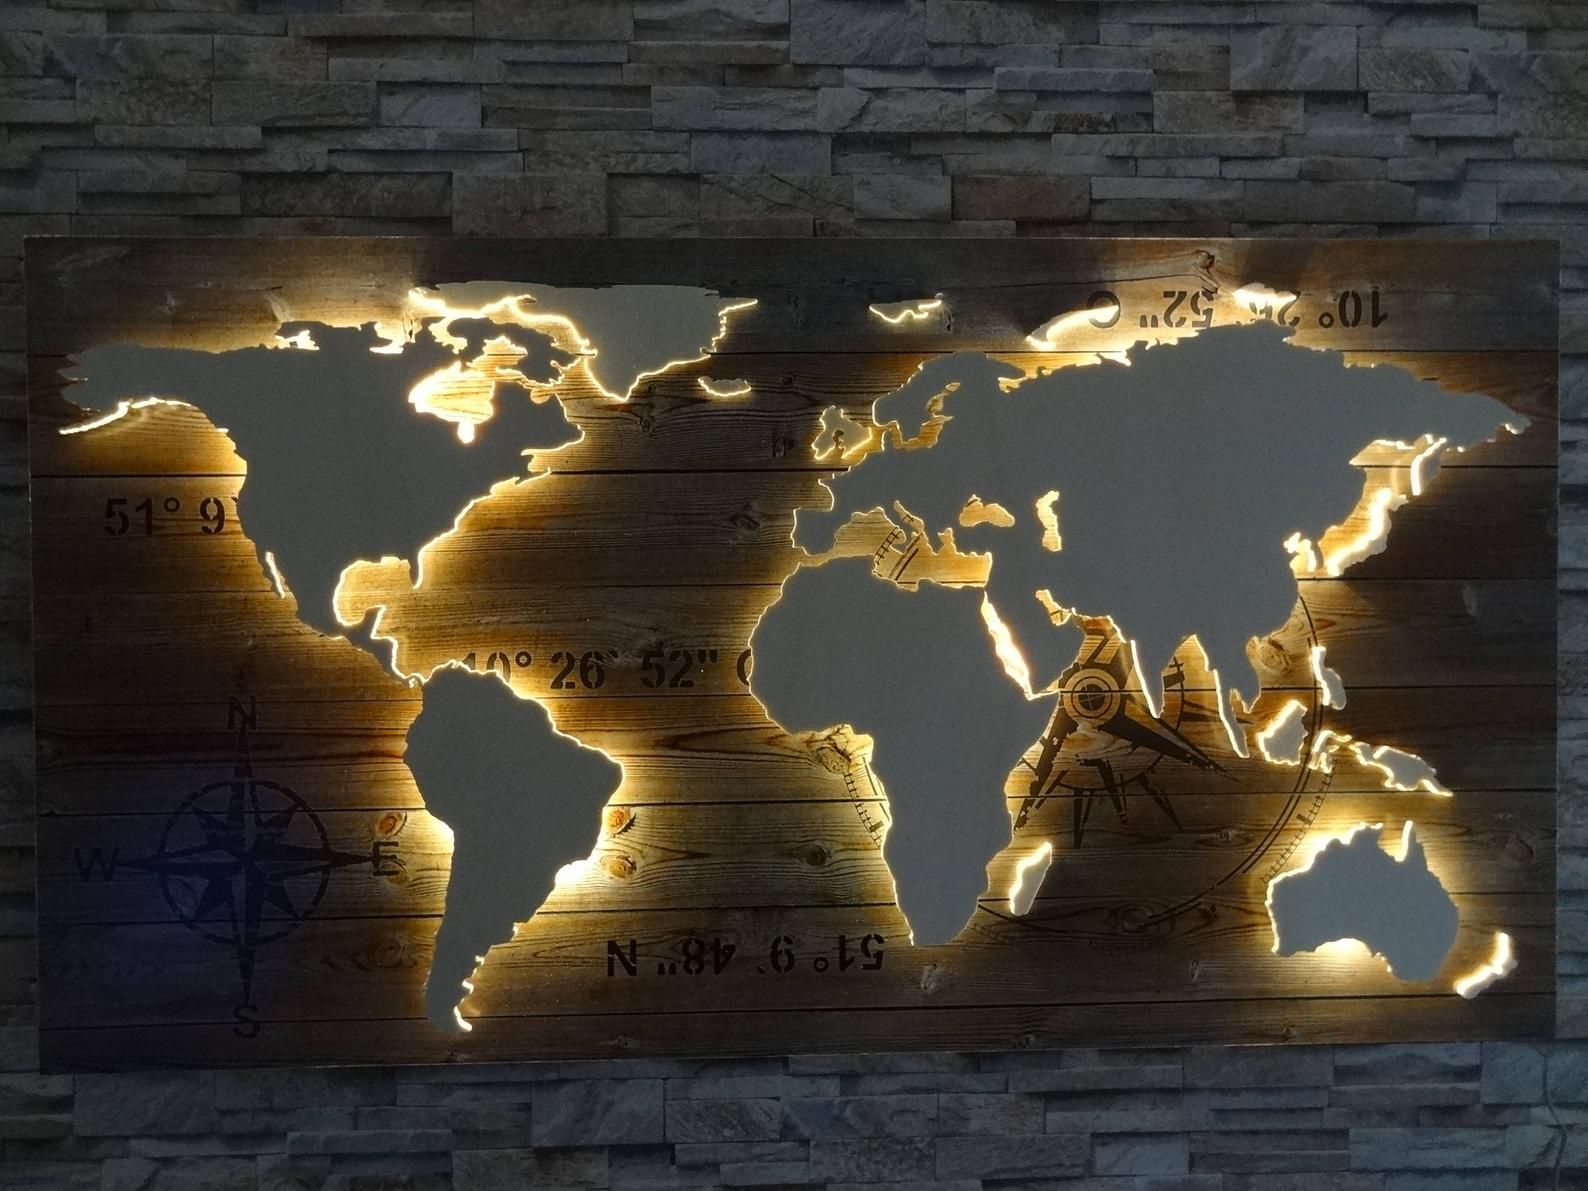 Weltkarte Aus Holz Led Beleuchtung 3d Effekt In 2020 Wood World Map World Map Art Map Wall Decor